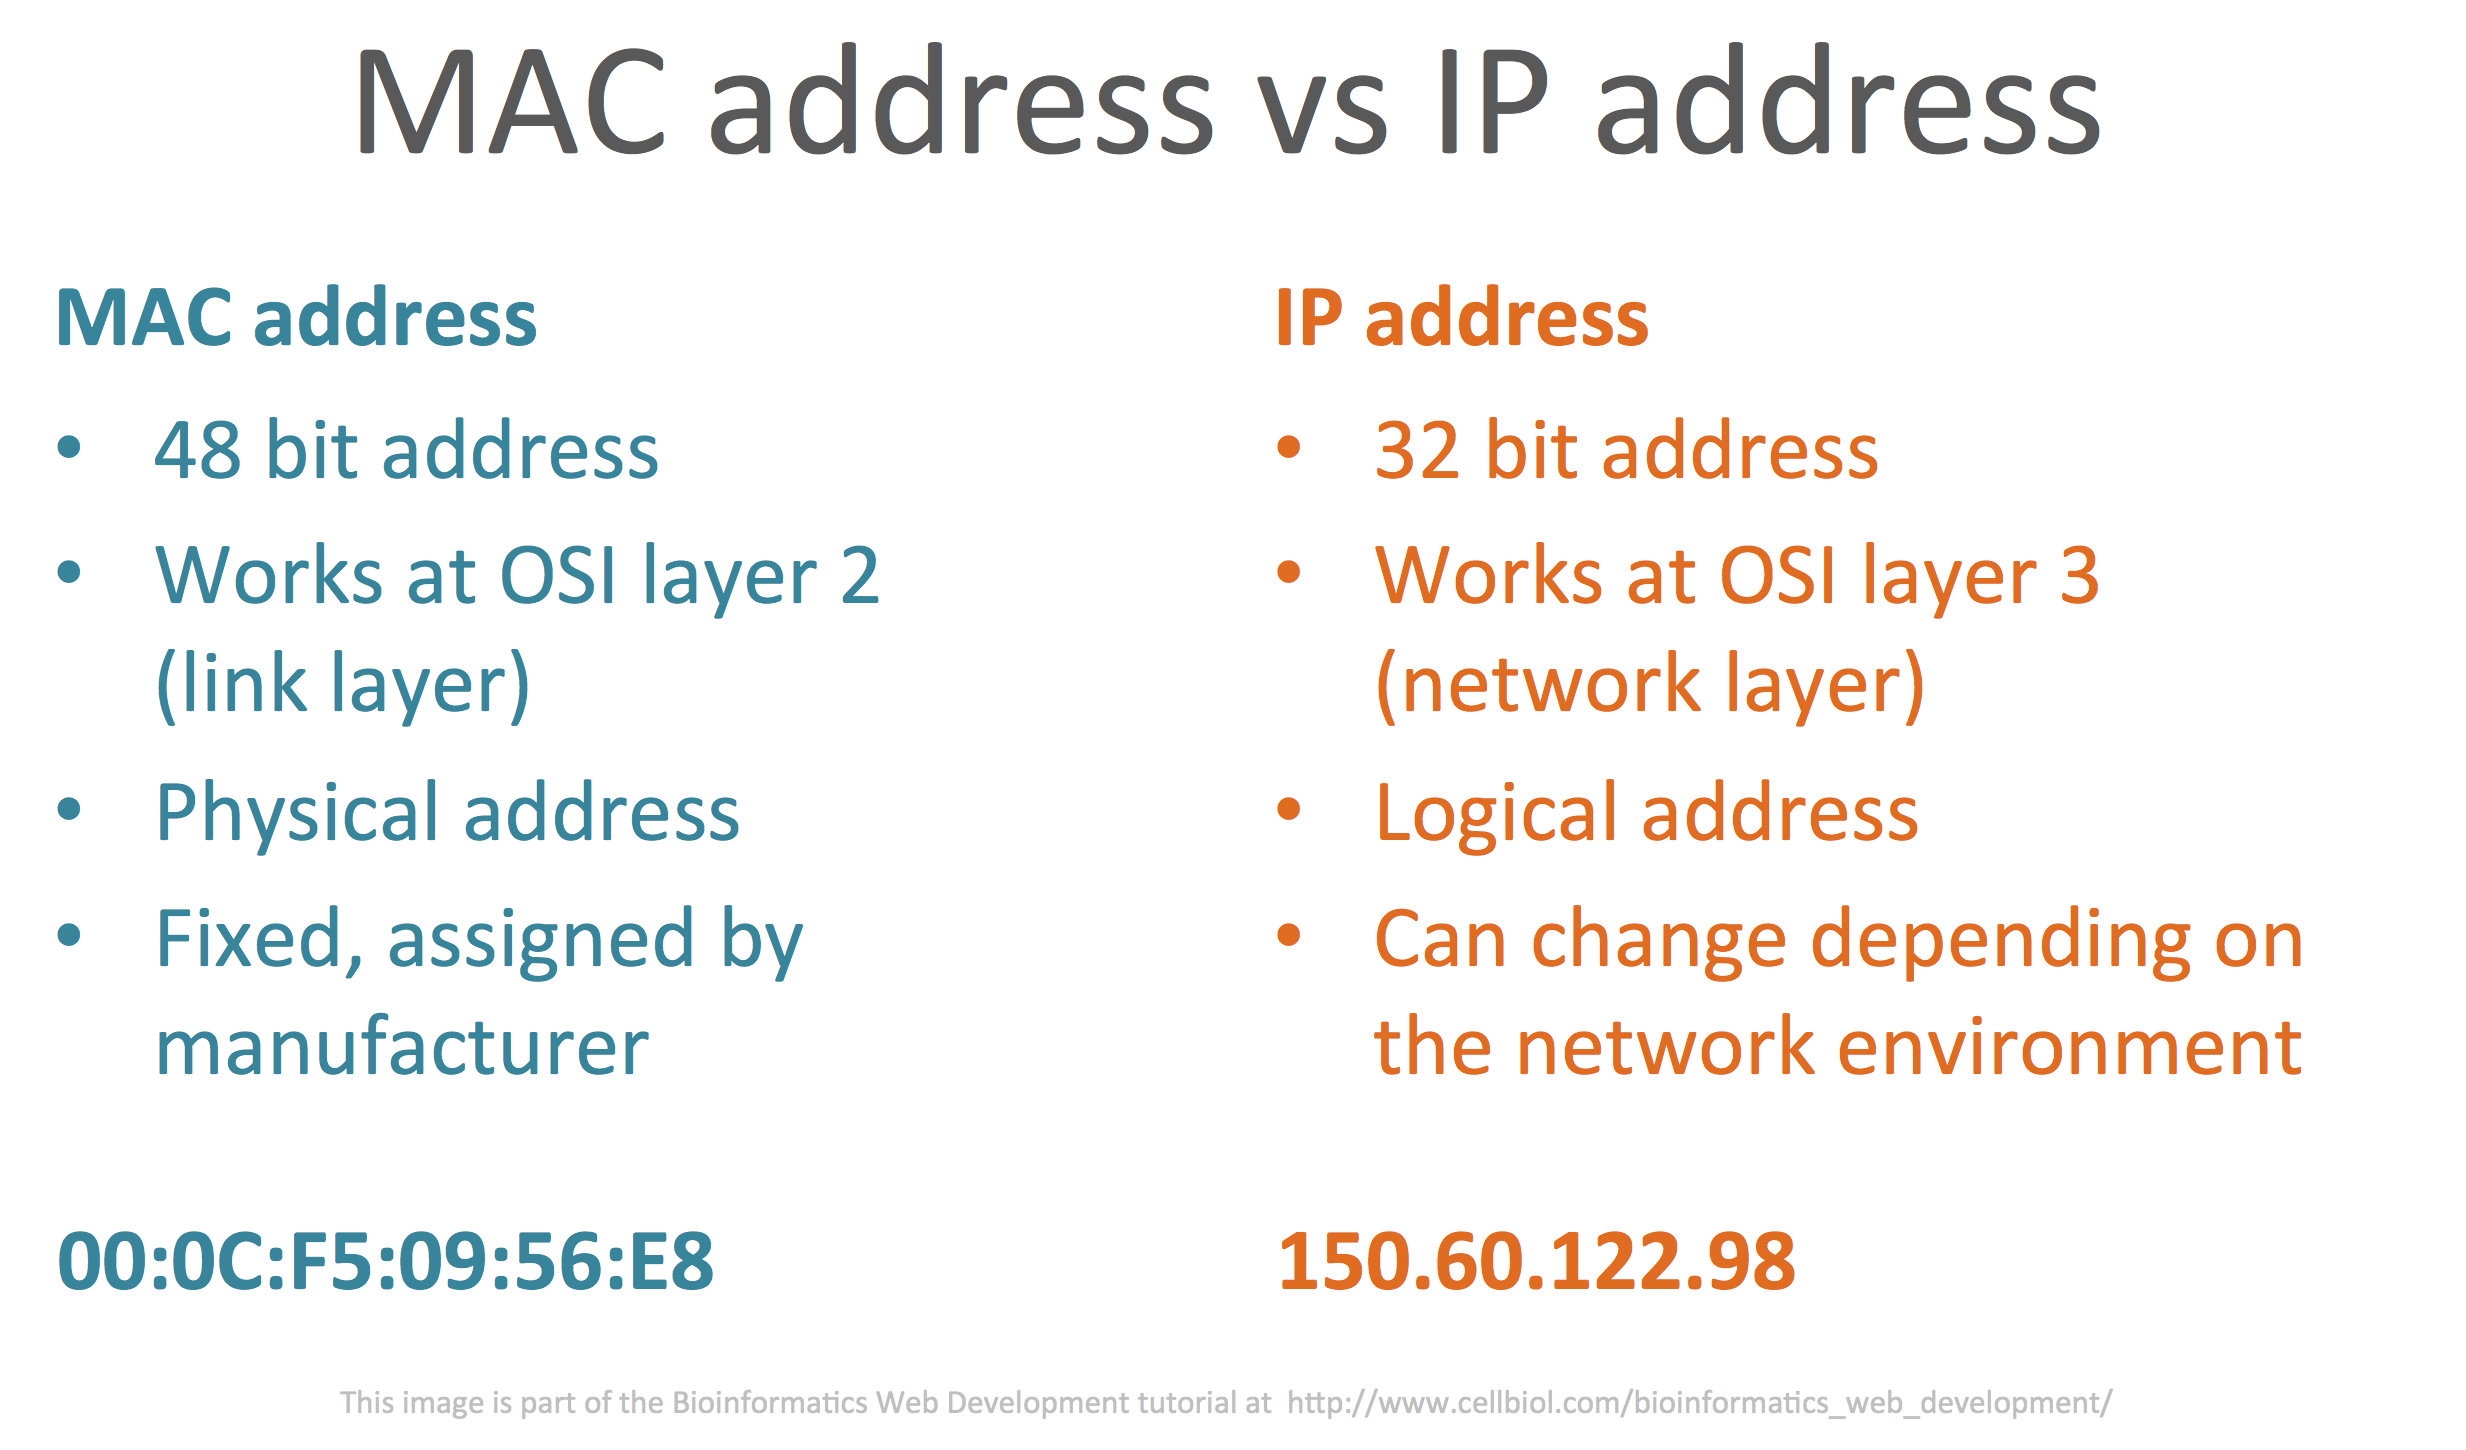 Comparison between MAC addresses and IP addresses